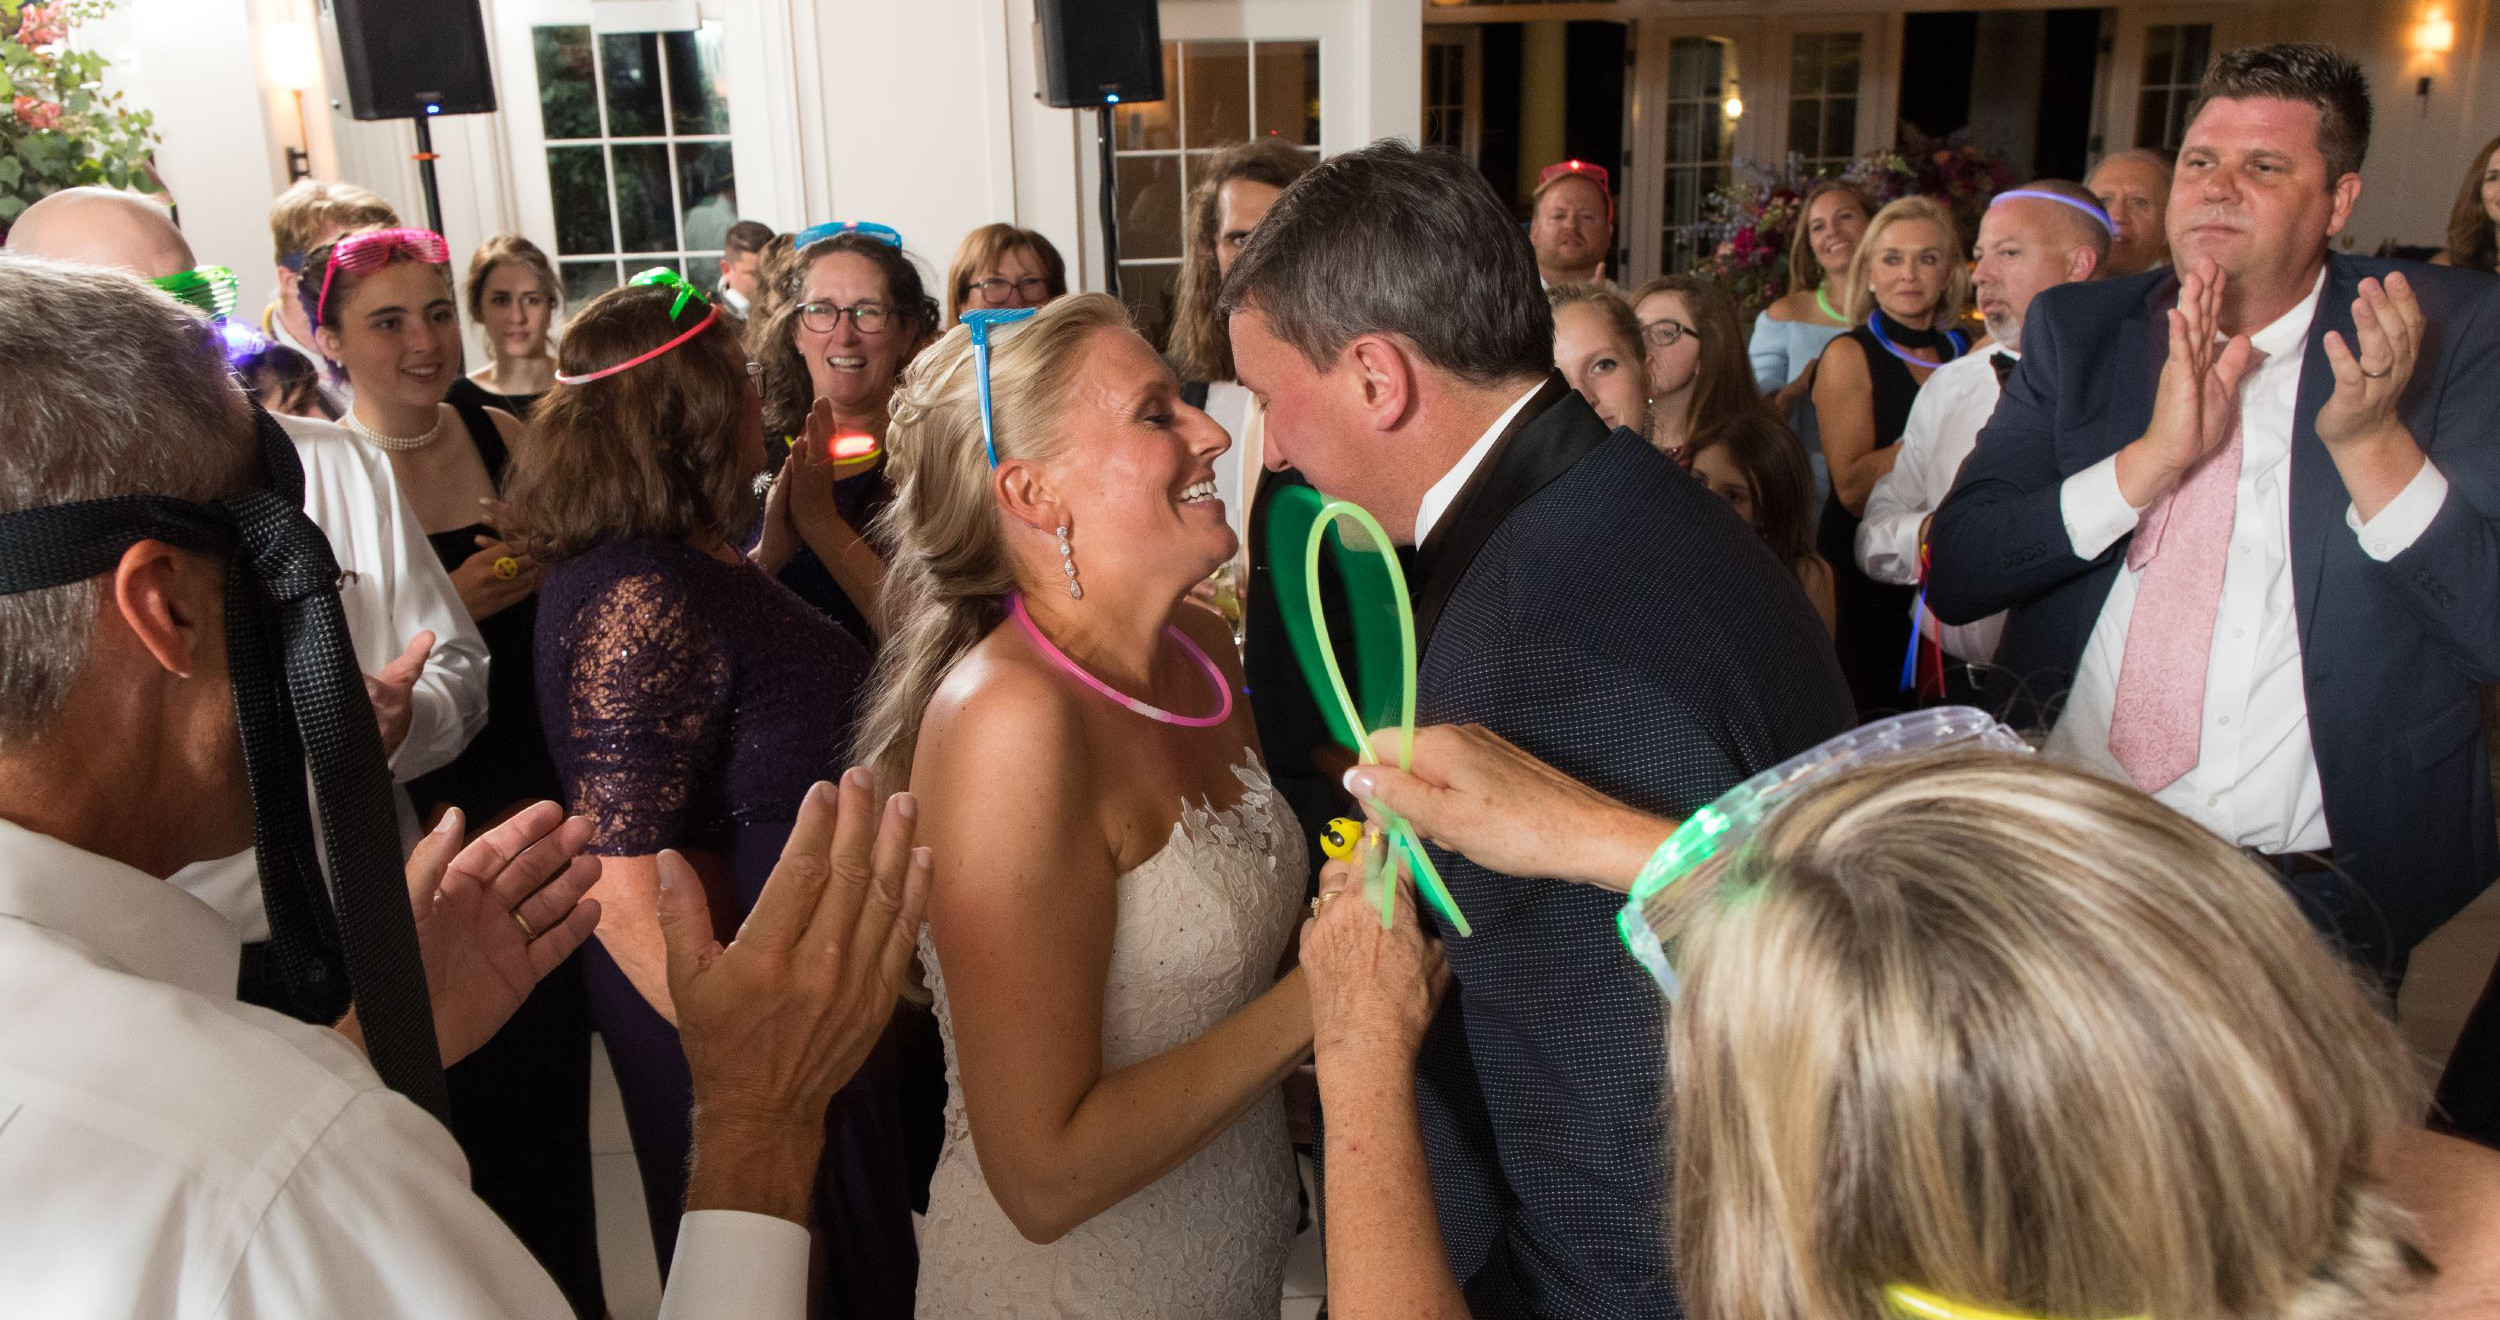 bride and groom dance with each other surrounded by friends